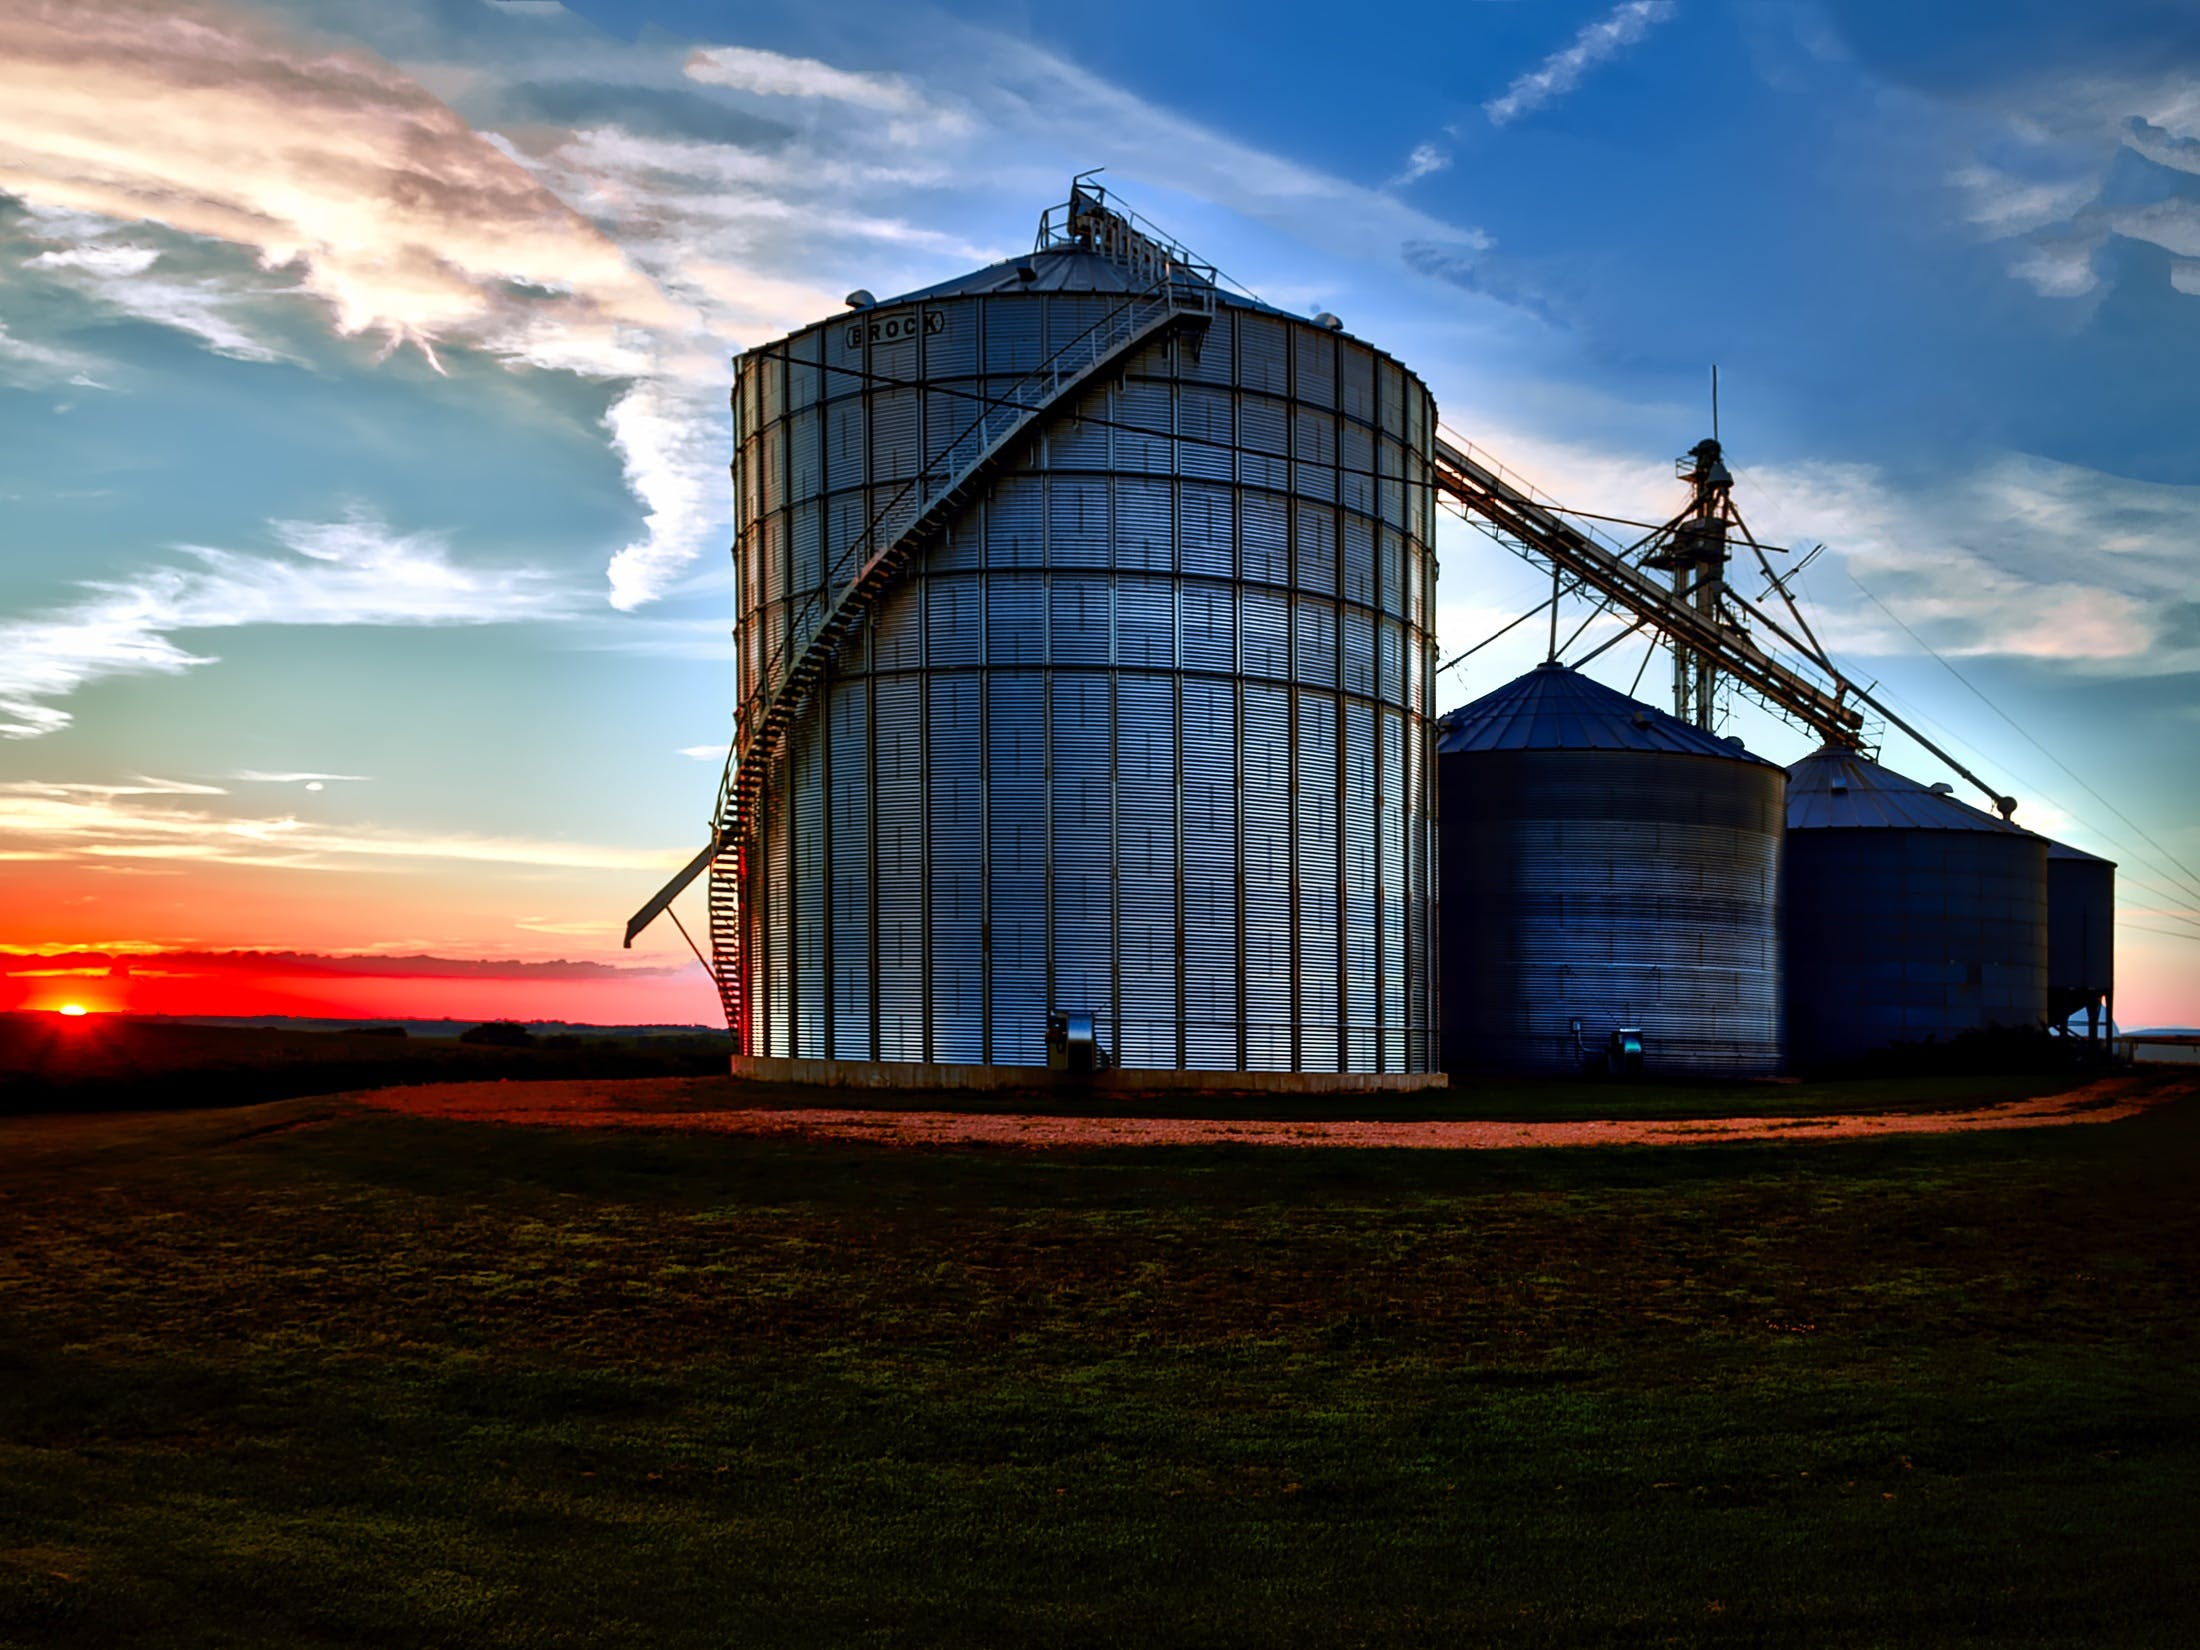 Free stock photo of dawn, building, industry, agriculture